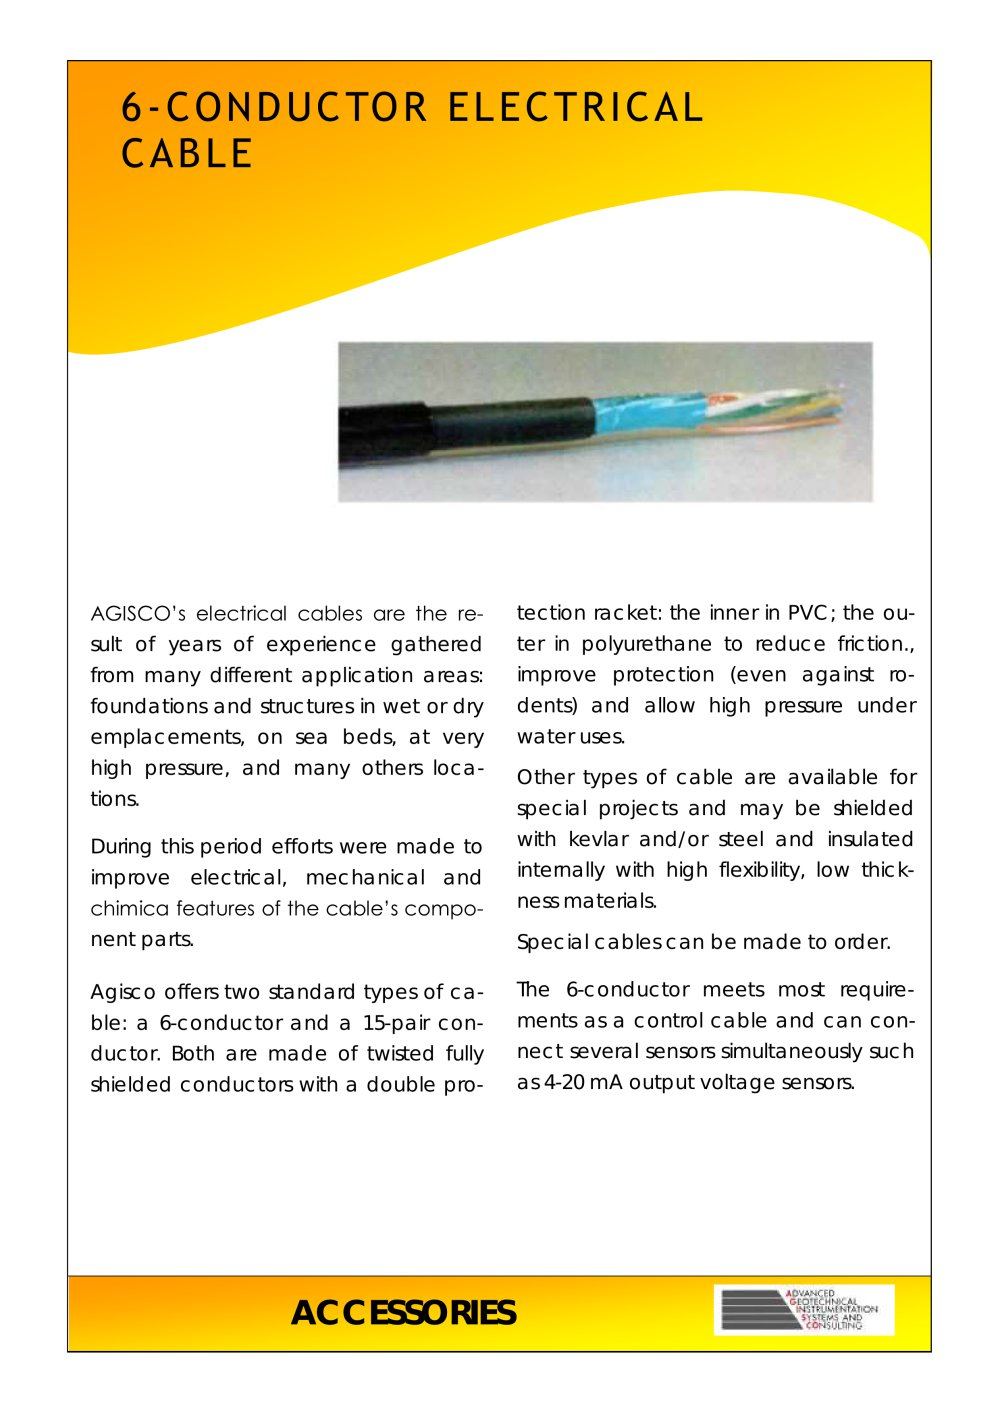 6 Conductor Electrical Cable Agisco Srl Pdf Catalogs Copper Wire Ductor Pvc Insulated 1 2 Pages